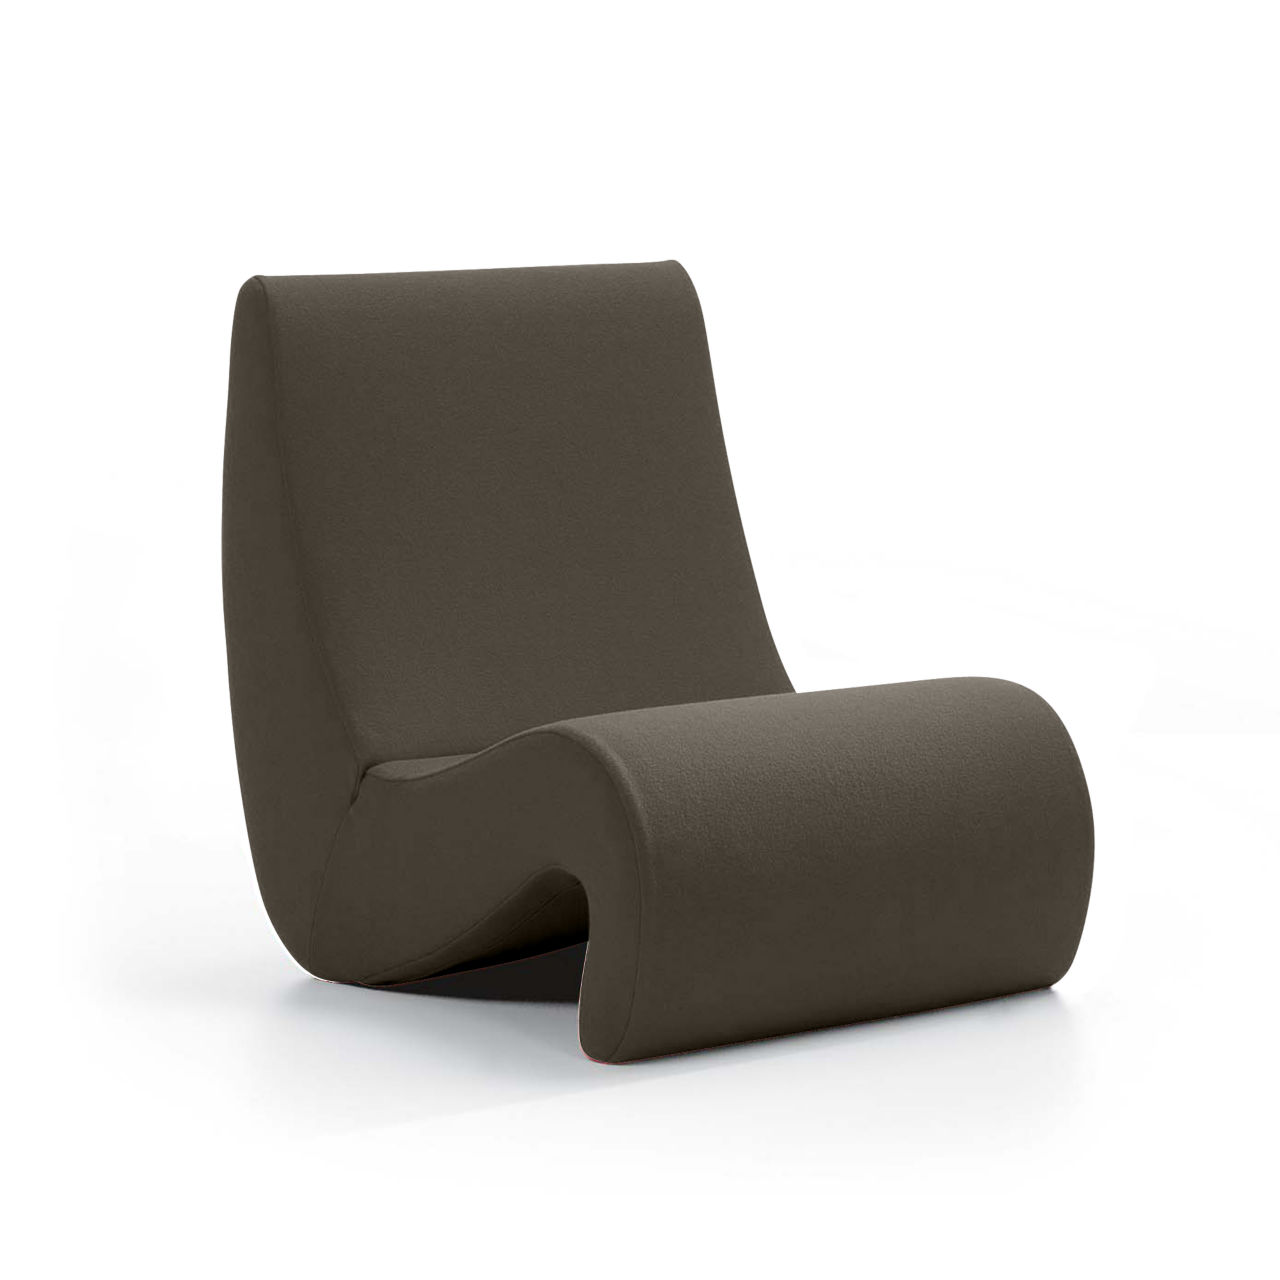 Amoebe Chair in Truffle Lowback by Vitra